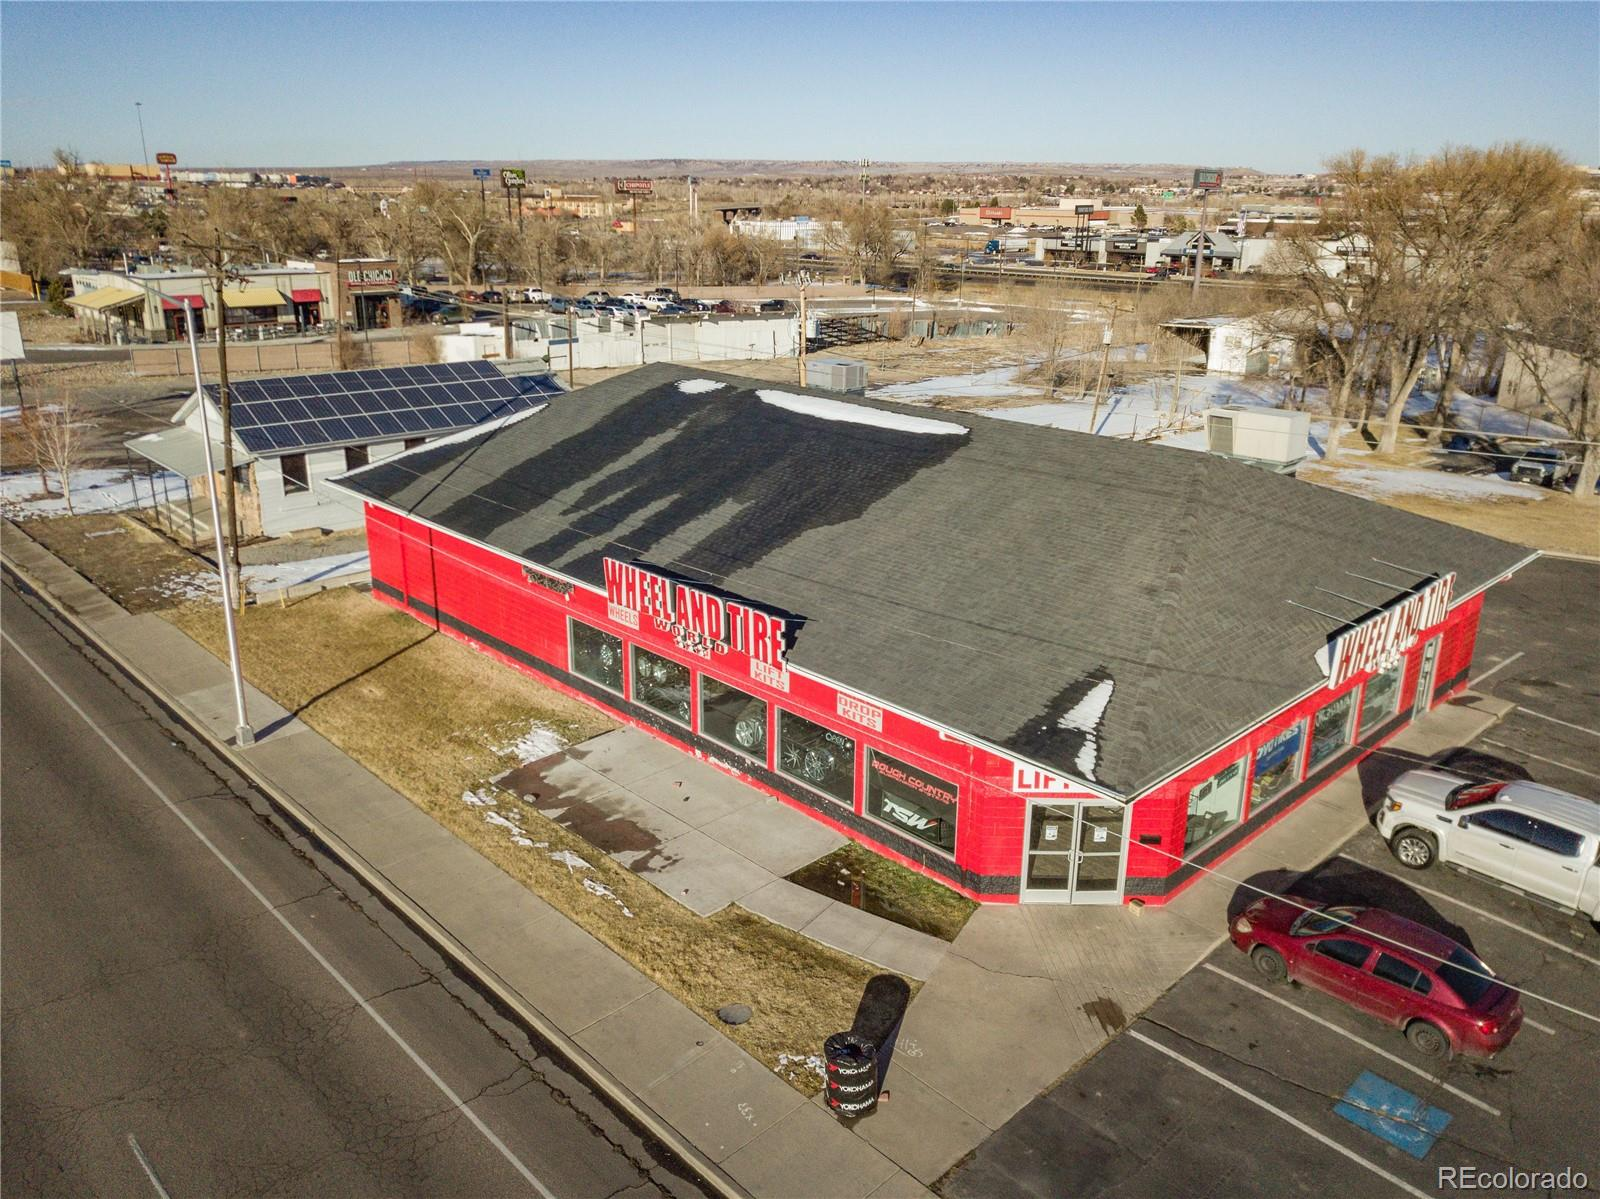 3 properties in one! 1st has 5368 sft and has a triple net tenant with 2 years left on lease and 2nd 2 story bldg has 3600 sft on ea floor and also a triple net tenant with 4 years left on lease. The 3rd is a 1/2 acre of vacant land opening up to the paved frontage road!